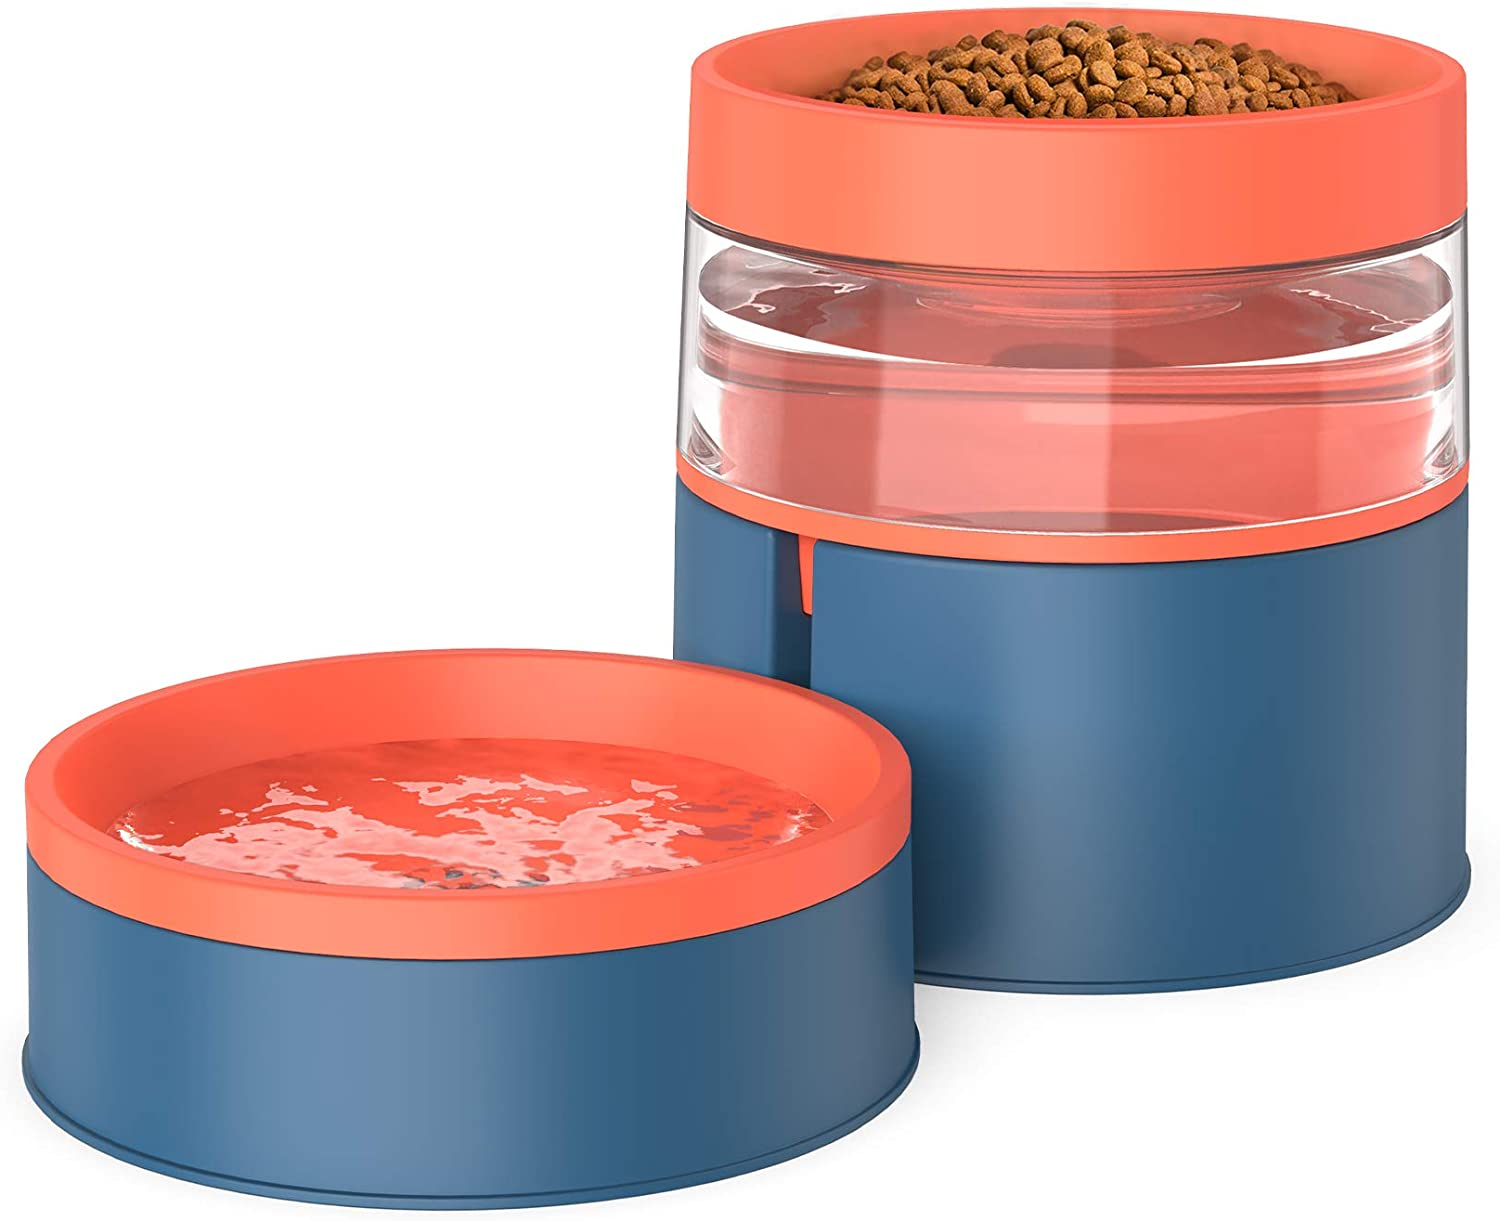 Double Cat Bowls - 2 in 1 Pet Automatic Max 61% OFF Tulsa Mall Detachable Gravit Feeder